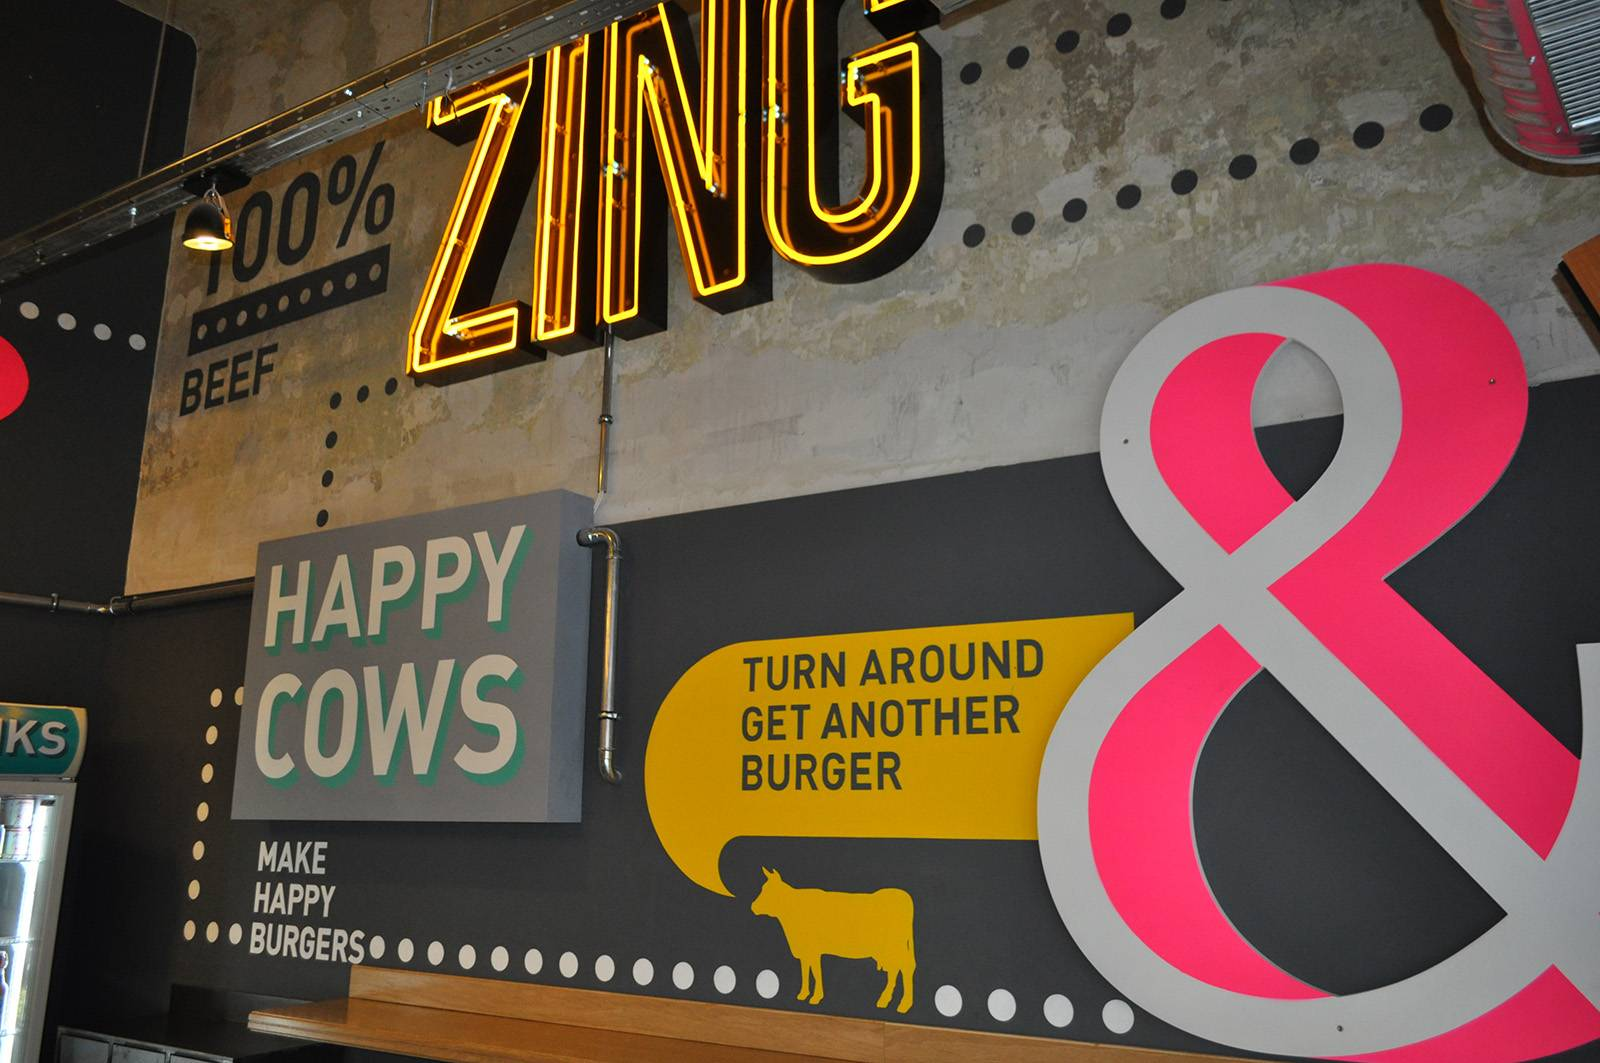 Zing burger - Neopaint Works